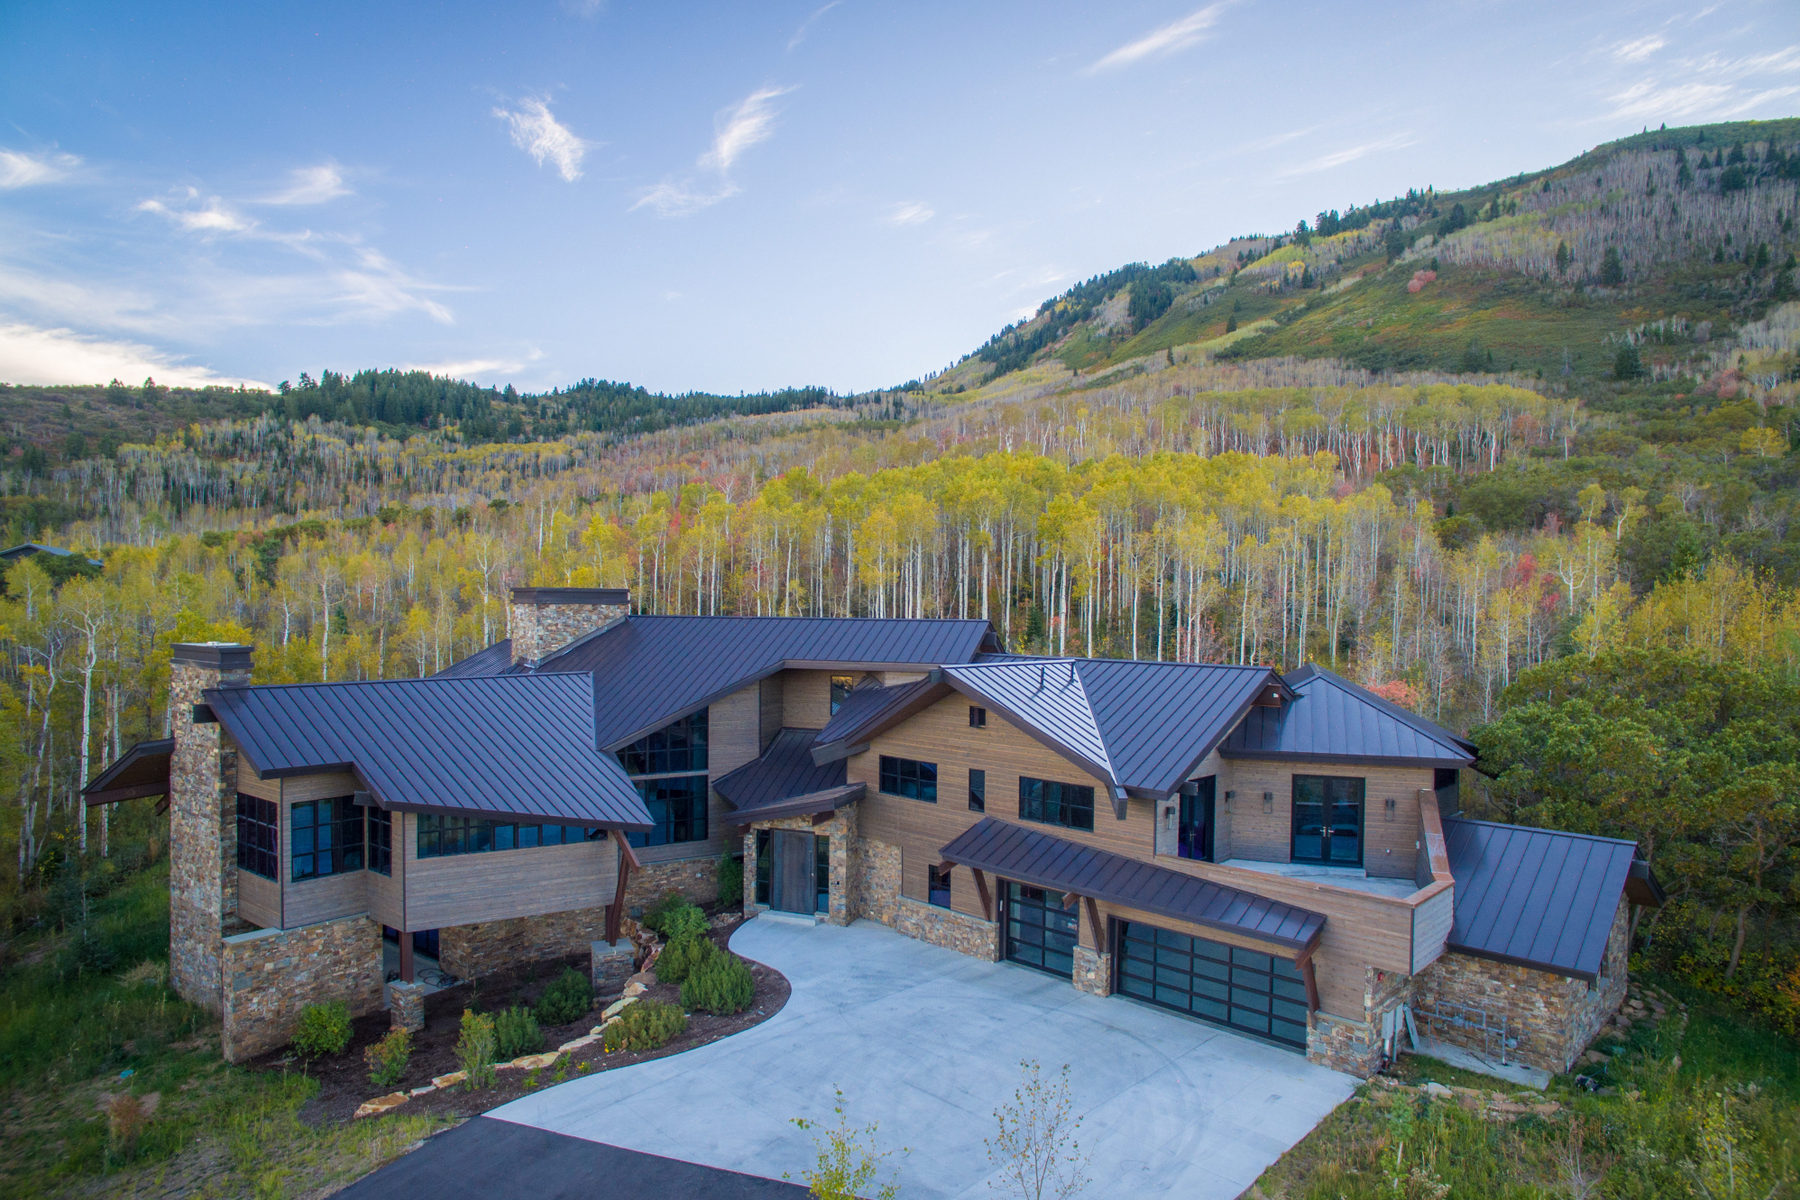 Casa Unifamiliar por un Venta en Newly Finished Mountain Contemporary Masterpiece 21 Canyon Ct Park City, Utah 84060 Estados Unidos